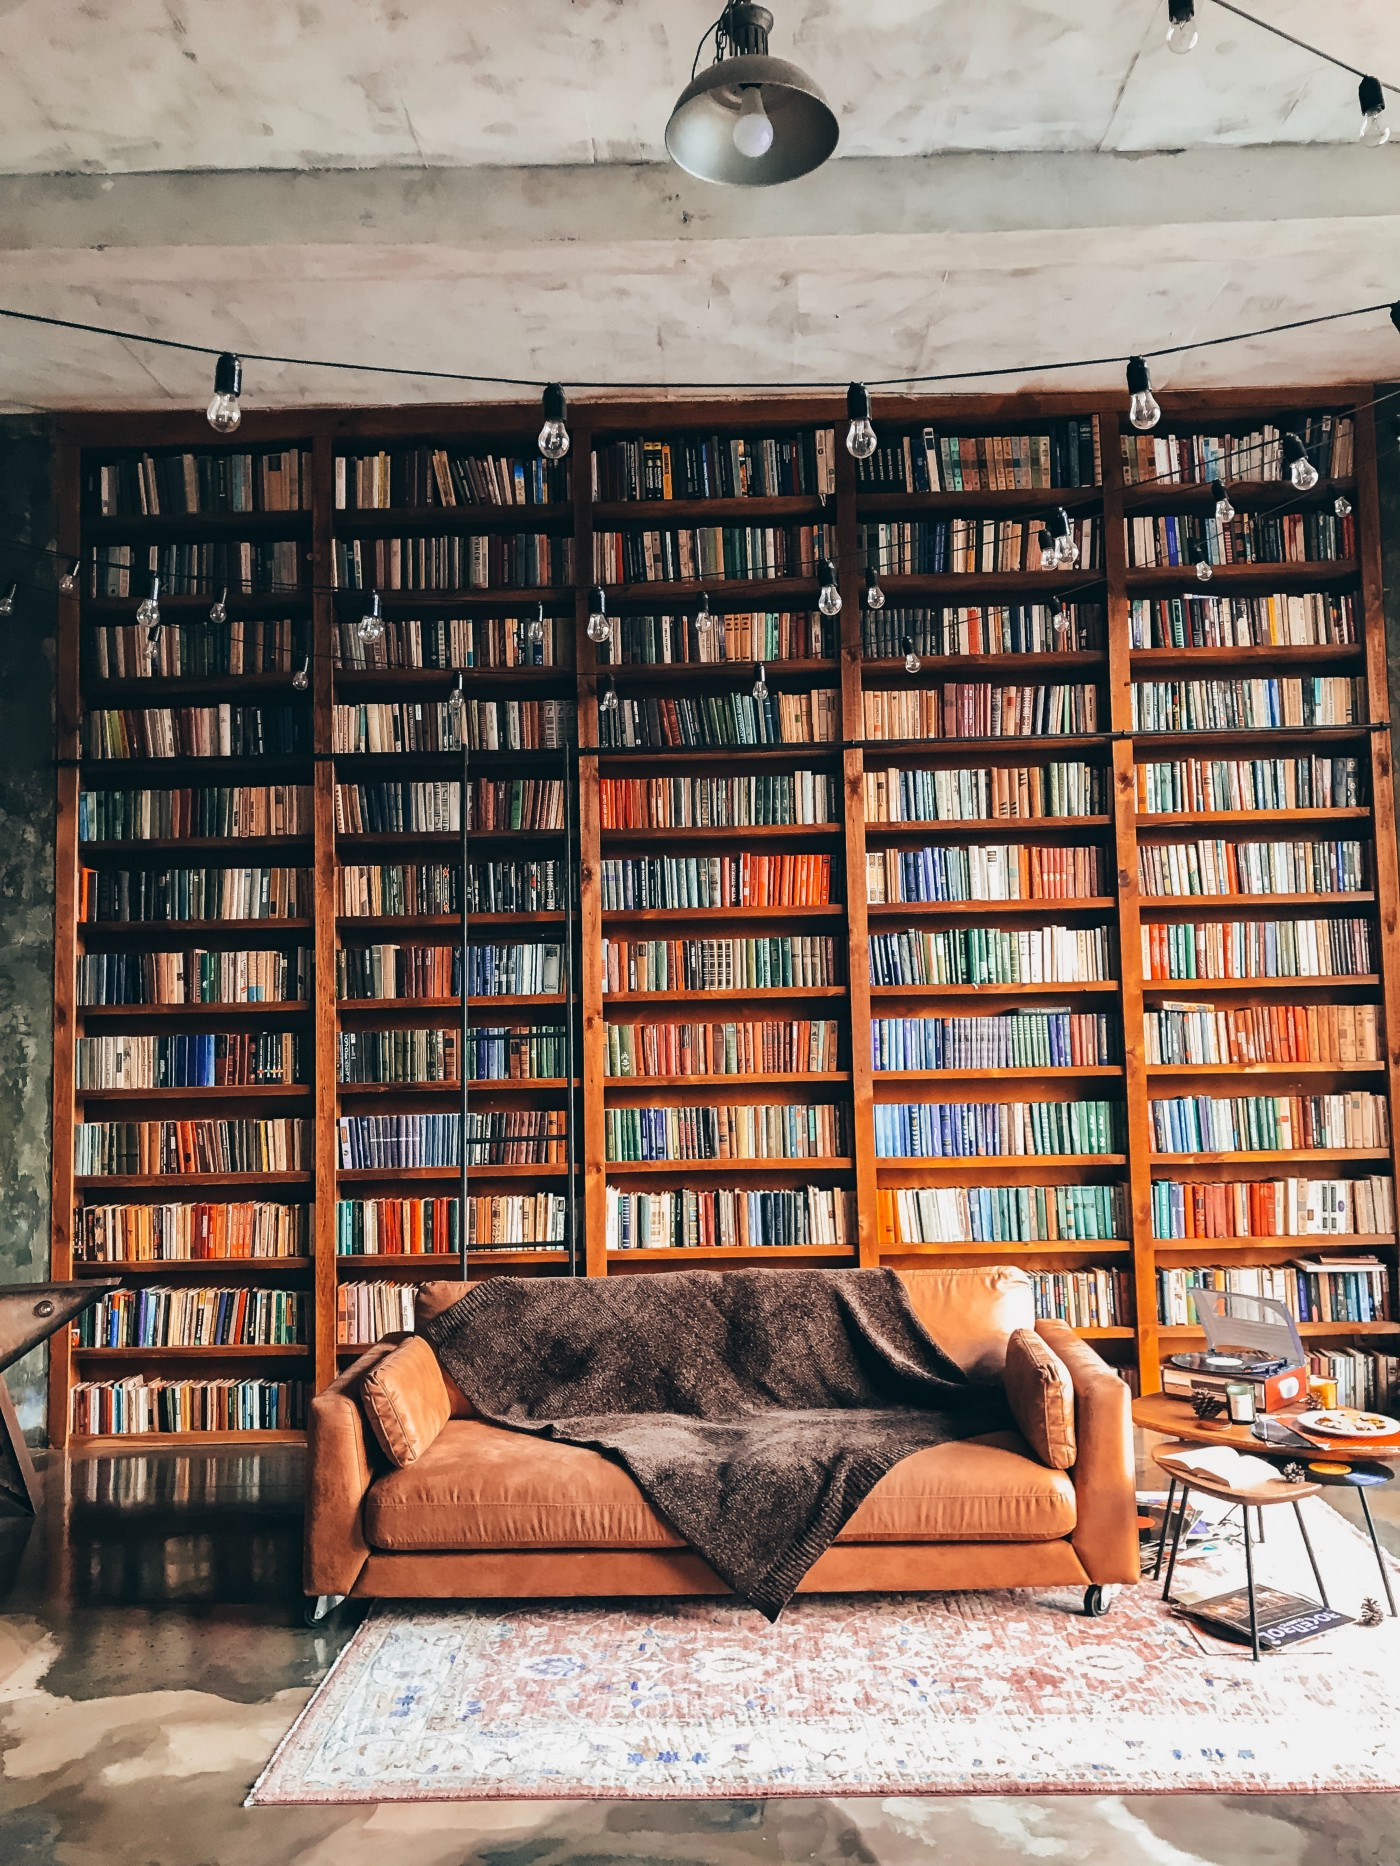 A large colorful bookcase fills an entire wall as an empty sofa beckons a reader to sit down.